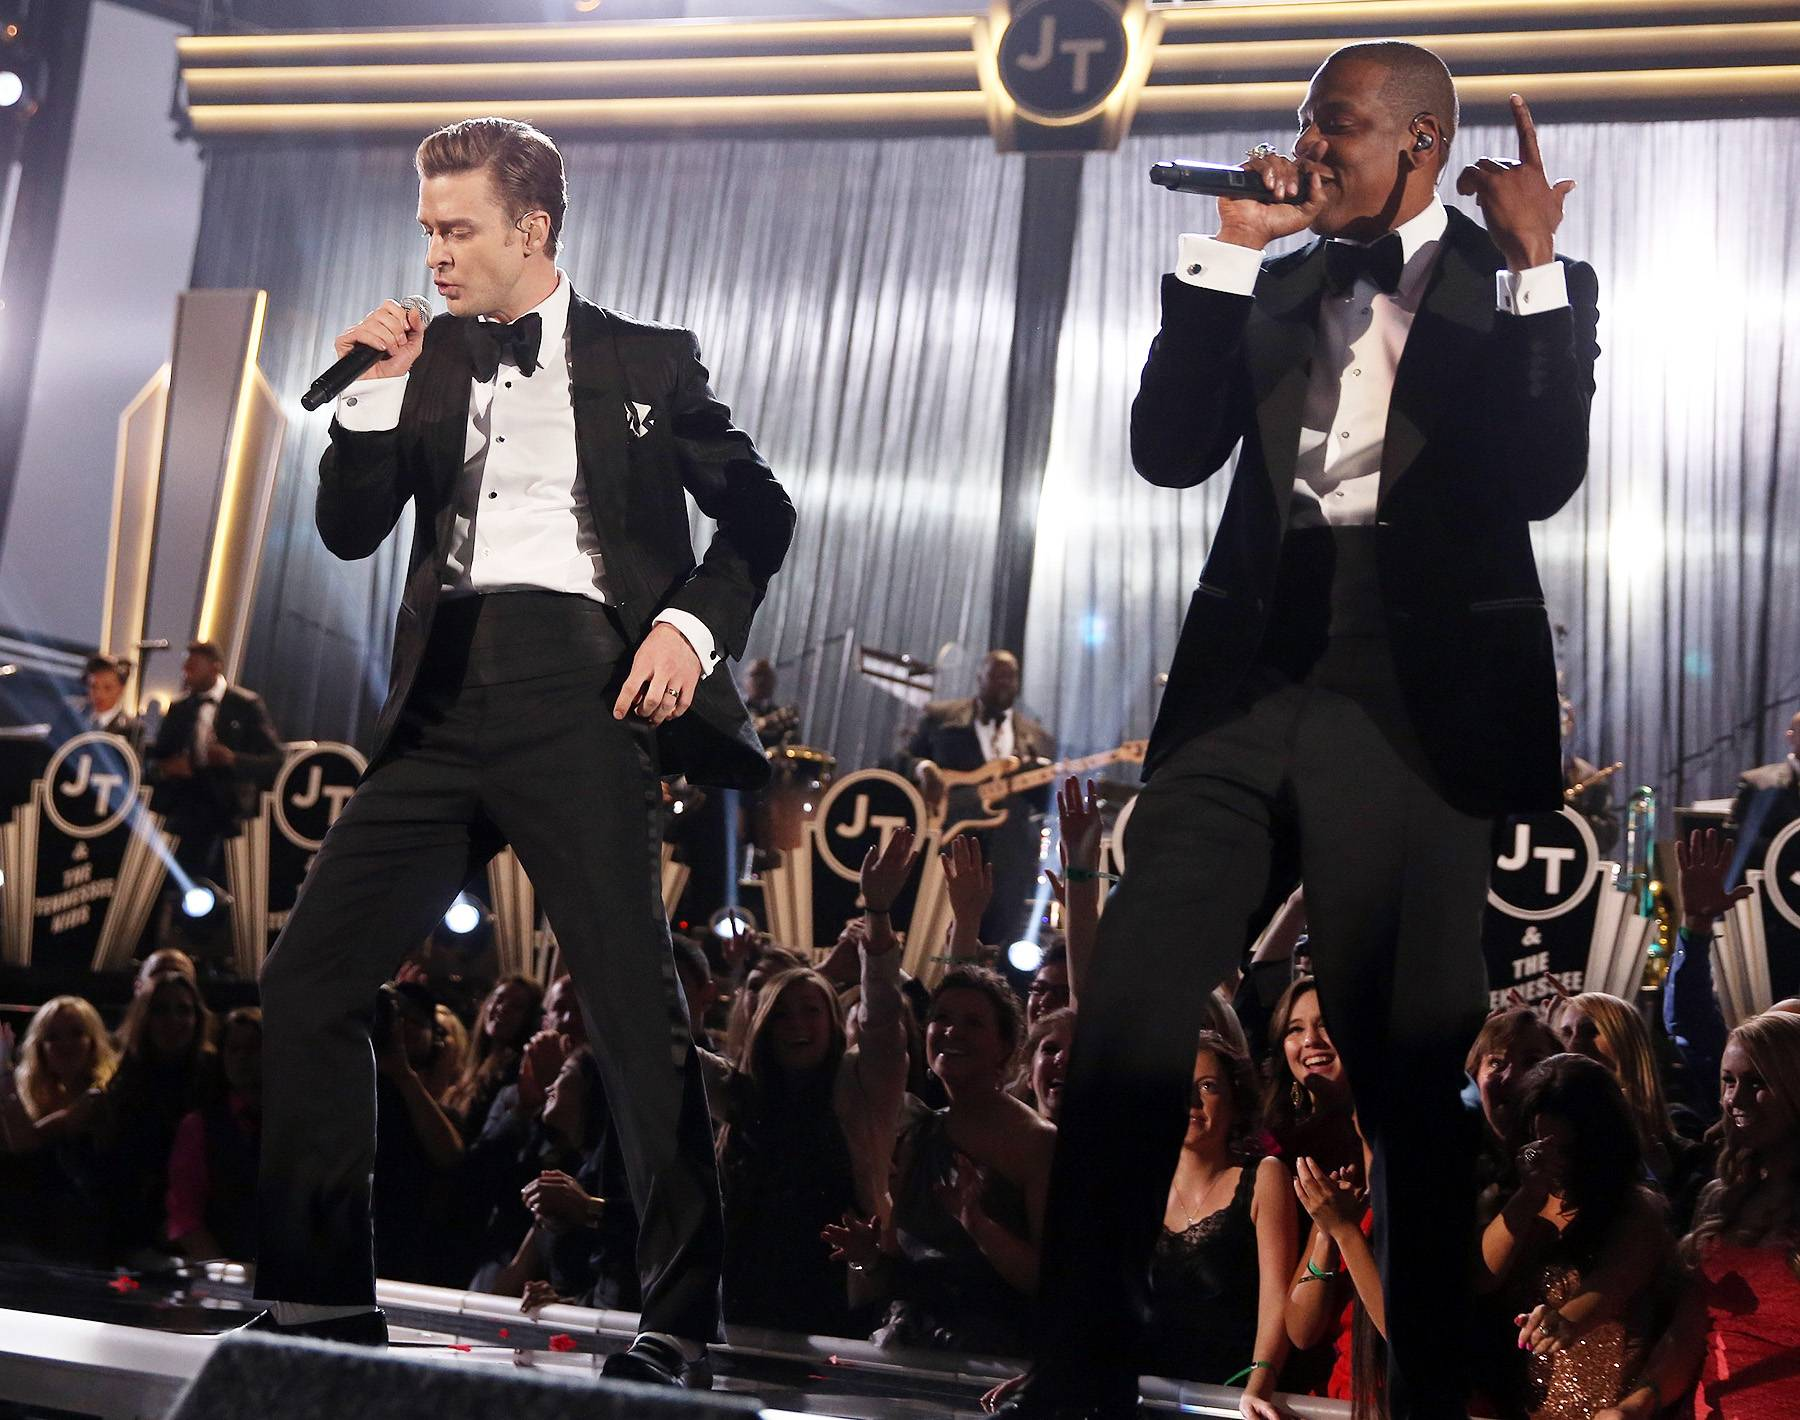 """The New Dream Team— February 10, 2013 - After a lengthy hiatus from music, Justin took on the 2013 Grammys with a big band inspired performance of """"Pusher Love Girl"""" and """"Suit & Tie"""" with a special appearance from none other than one of his musical partners in crime, Jay-Z. (Photo: Christopher Polk/Getty Images for NARAS)"""